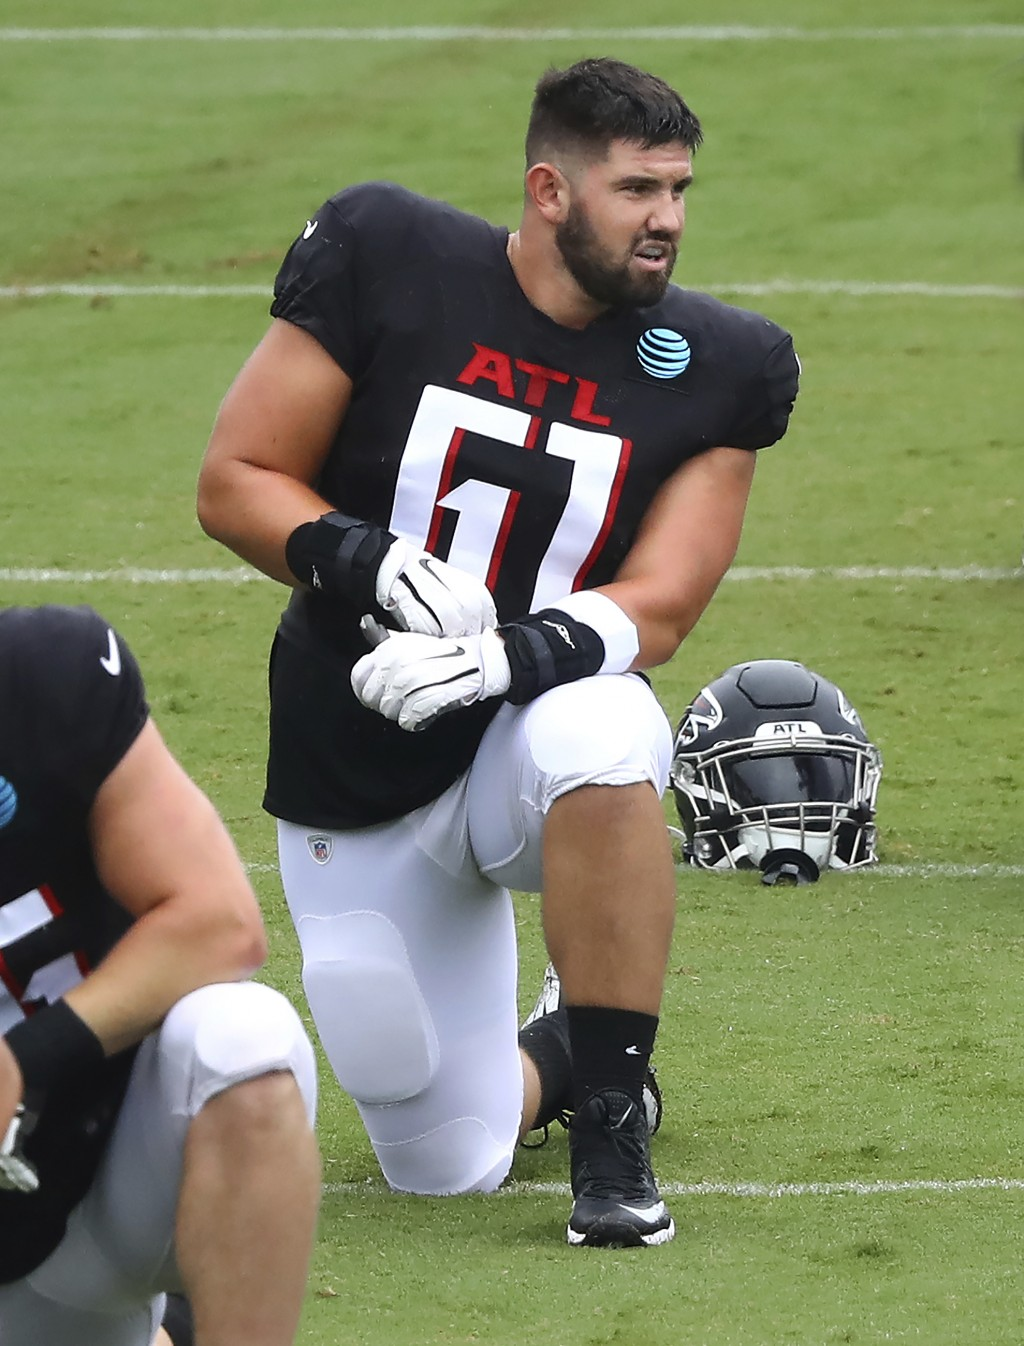 Atlanta Falcons rookie center Matt Hennessy loosens up during an NFL football training camp practice in Flowery Branch, Ga., Monday, Aug. 24, 2020.  (...